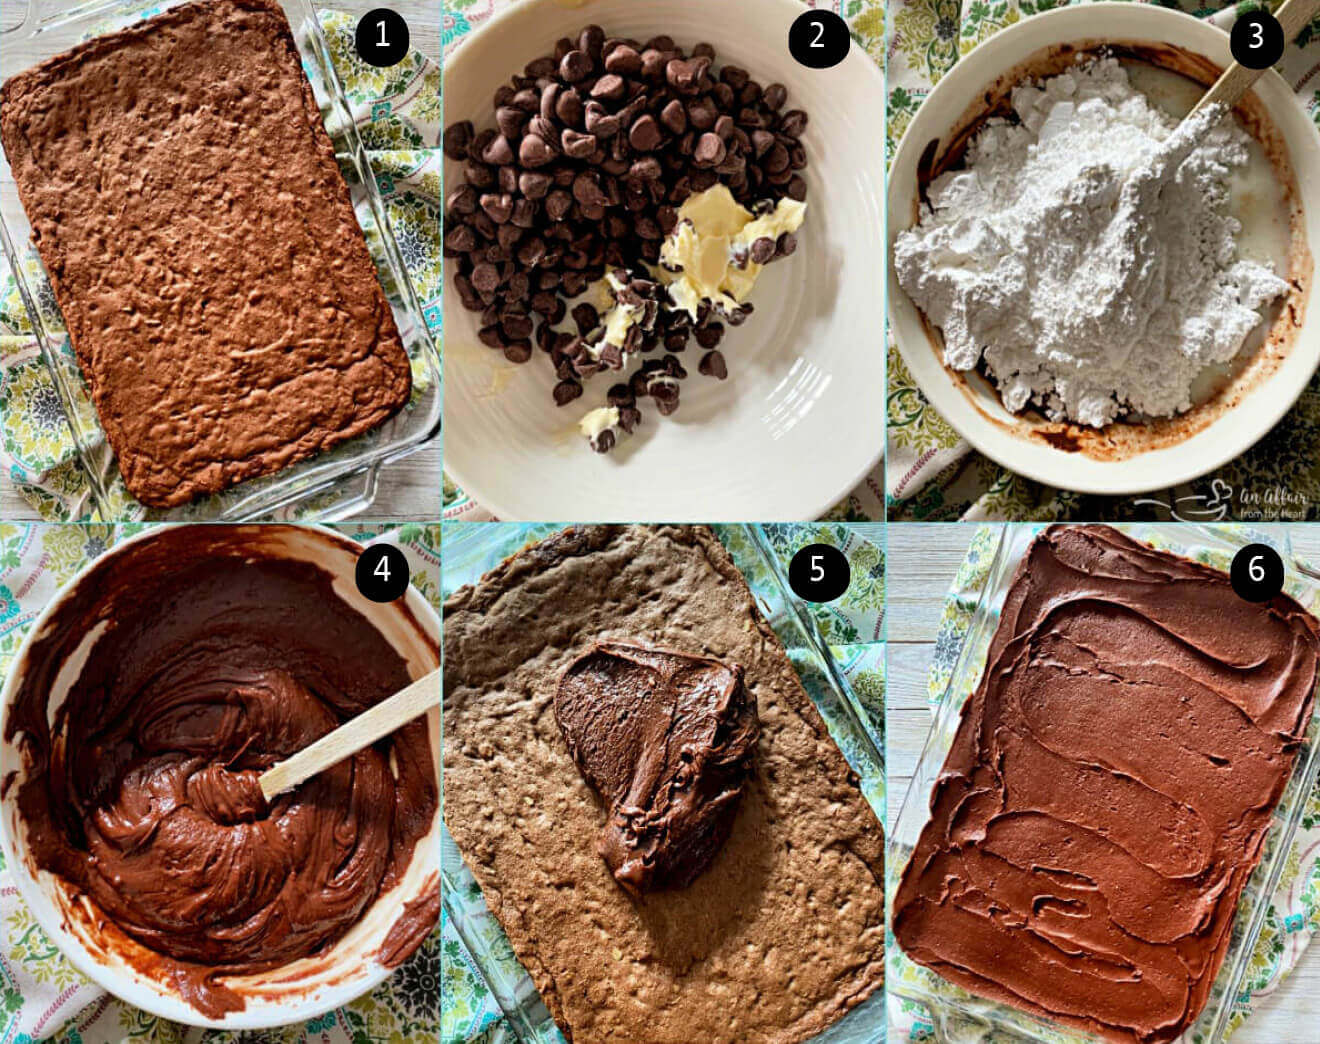 Directions to make and frost with yummy frosting.